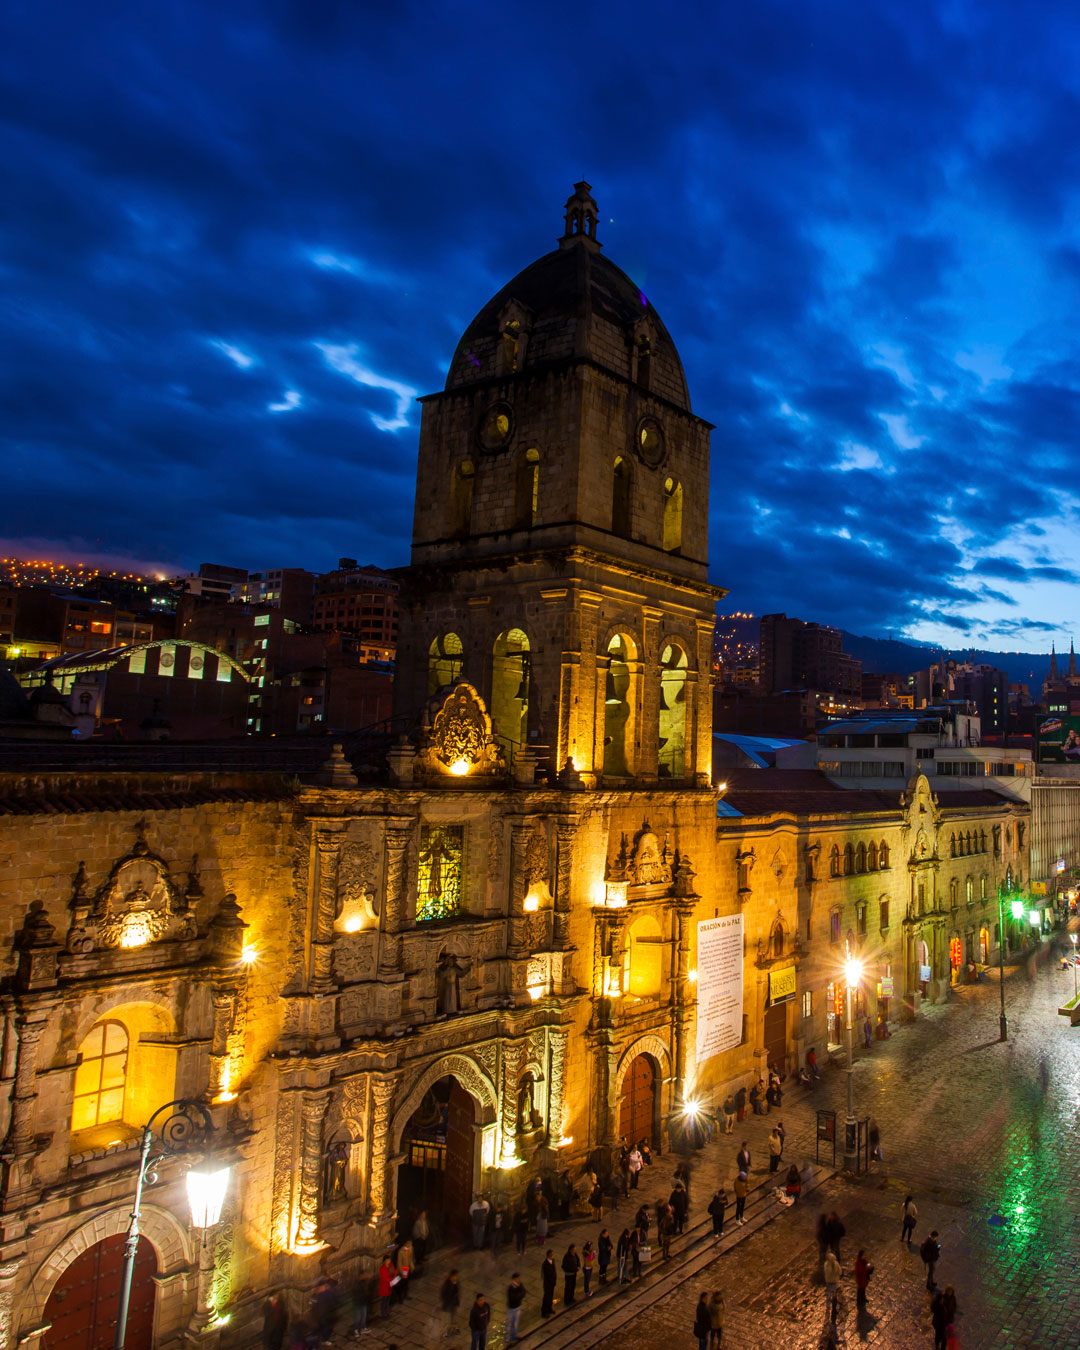 San Francisco Church in La Paz – Bolivia, Why is it a highlight?